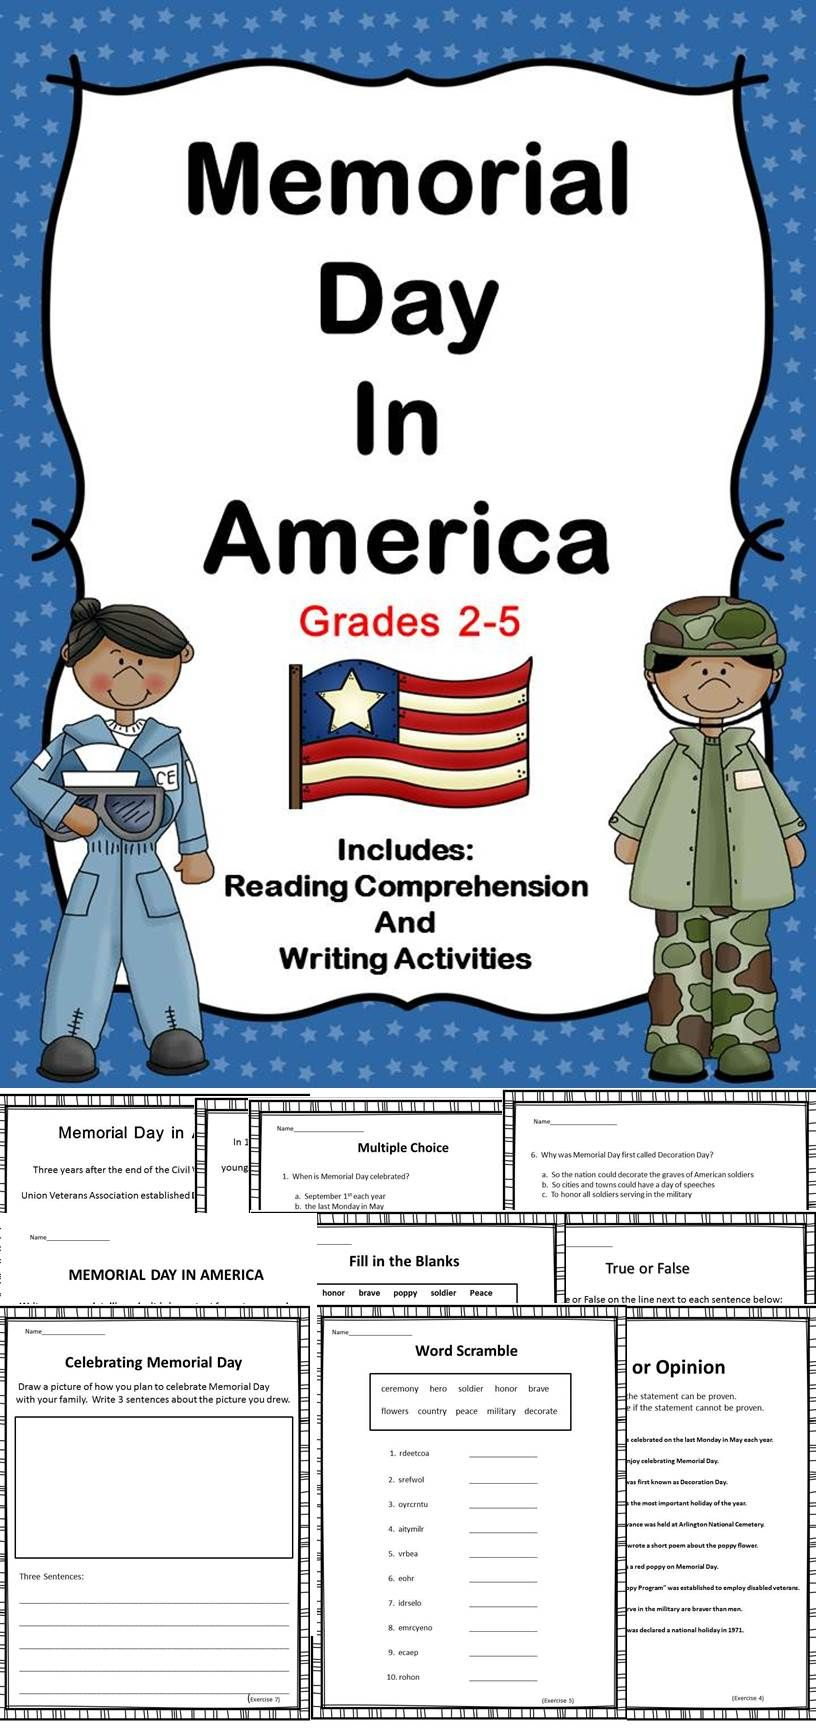 Memorial Day Elementary Lesson Plans Activities Special Education Classroom Memorial Day [ 1728 x 816 Pixel ]